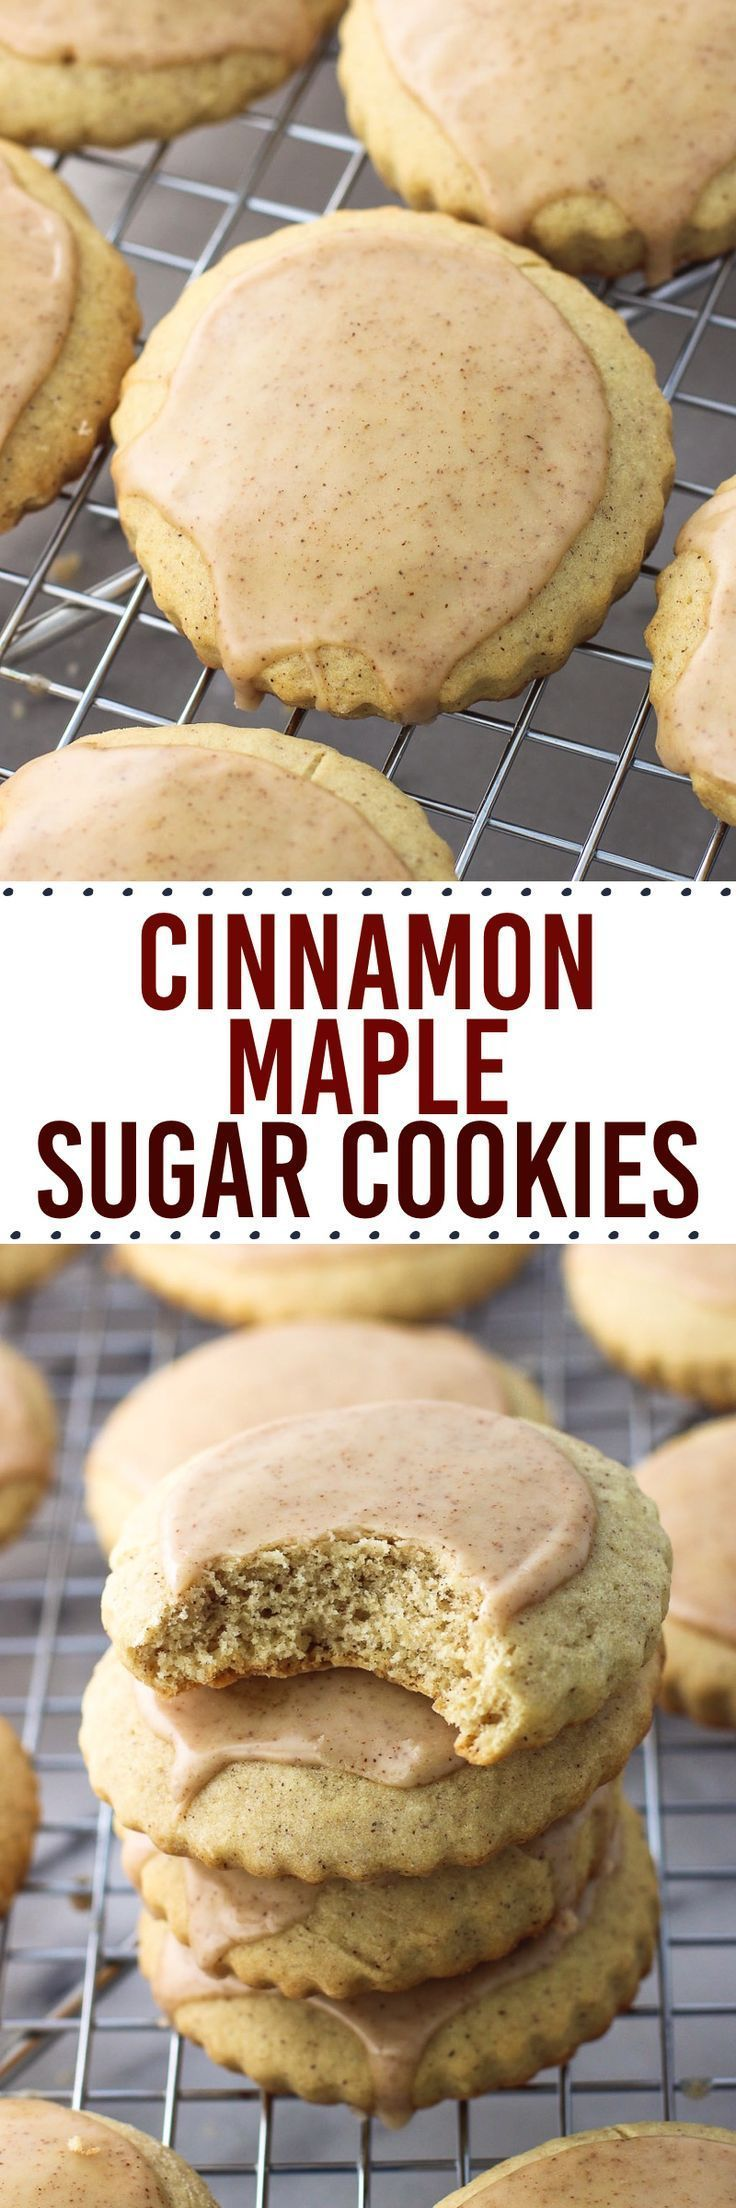 Cinnamon maple sugar cookies are tender and cinnamon-spiced, with a hint of maple flavor in the dough. Top with an easy, quick-setting cinnamon glaze and these are ready to serve!